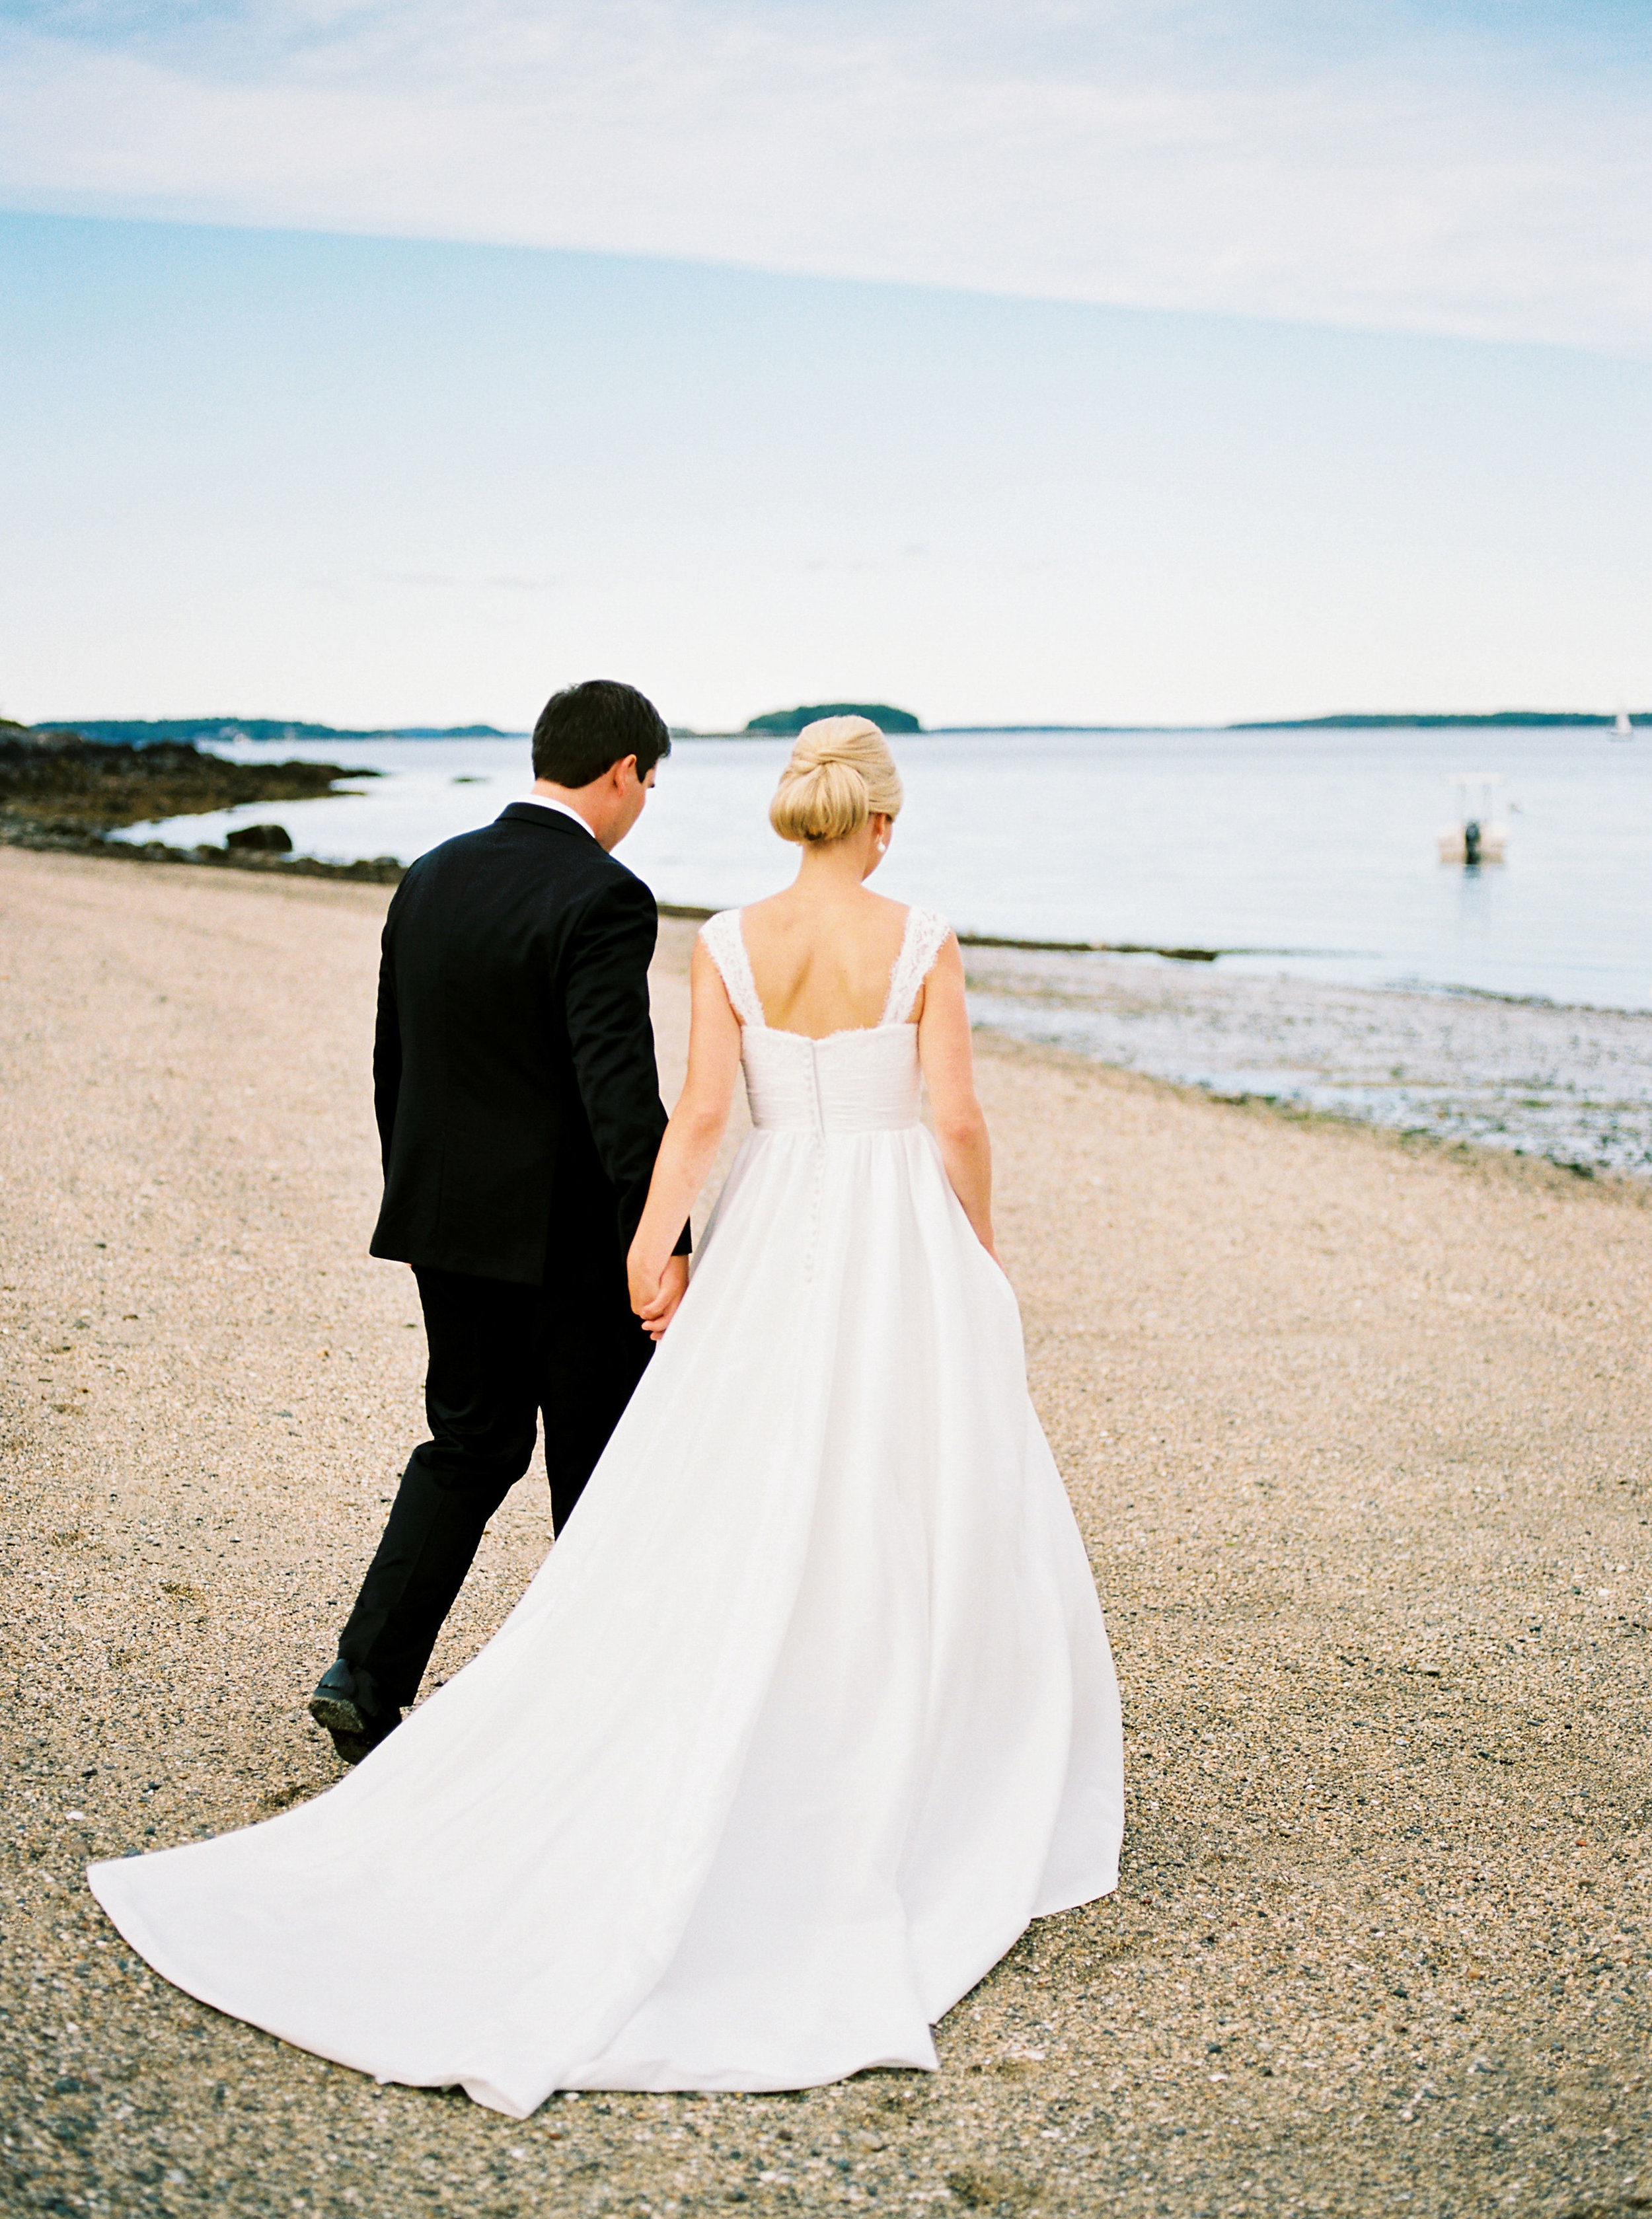 Alexandra-Elise-Photography-Ali-Reed-Chebeague-Island-Maine-Film-Wedding-Photographer-Elizabeth-Josh-Highlights-031.jpg